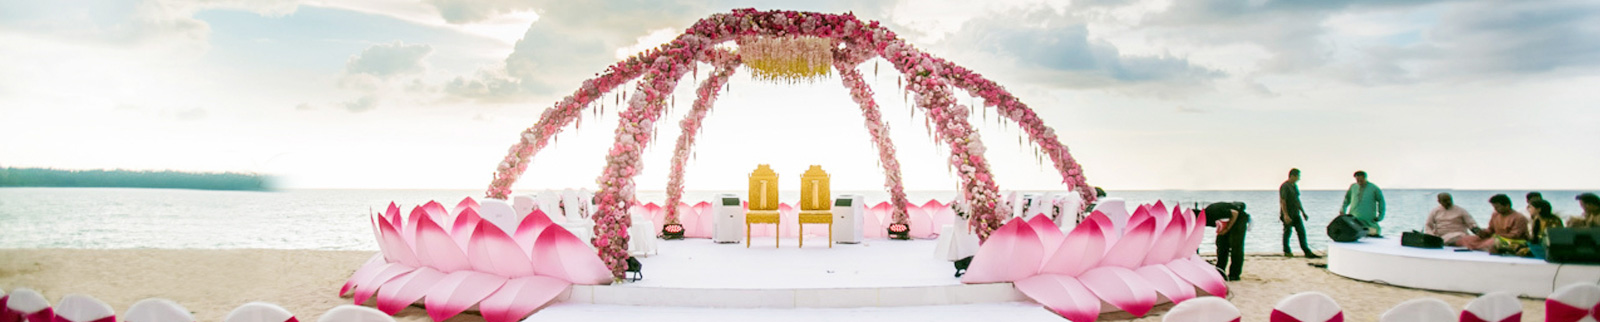 Mauritius Destination Weddings / Destination Weddings Packages Mauritius